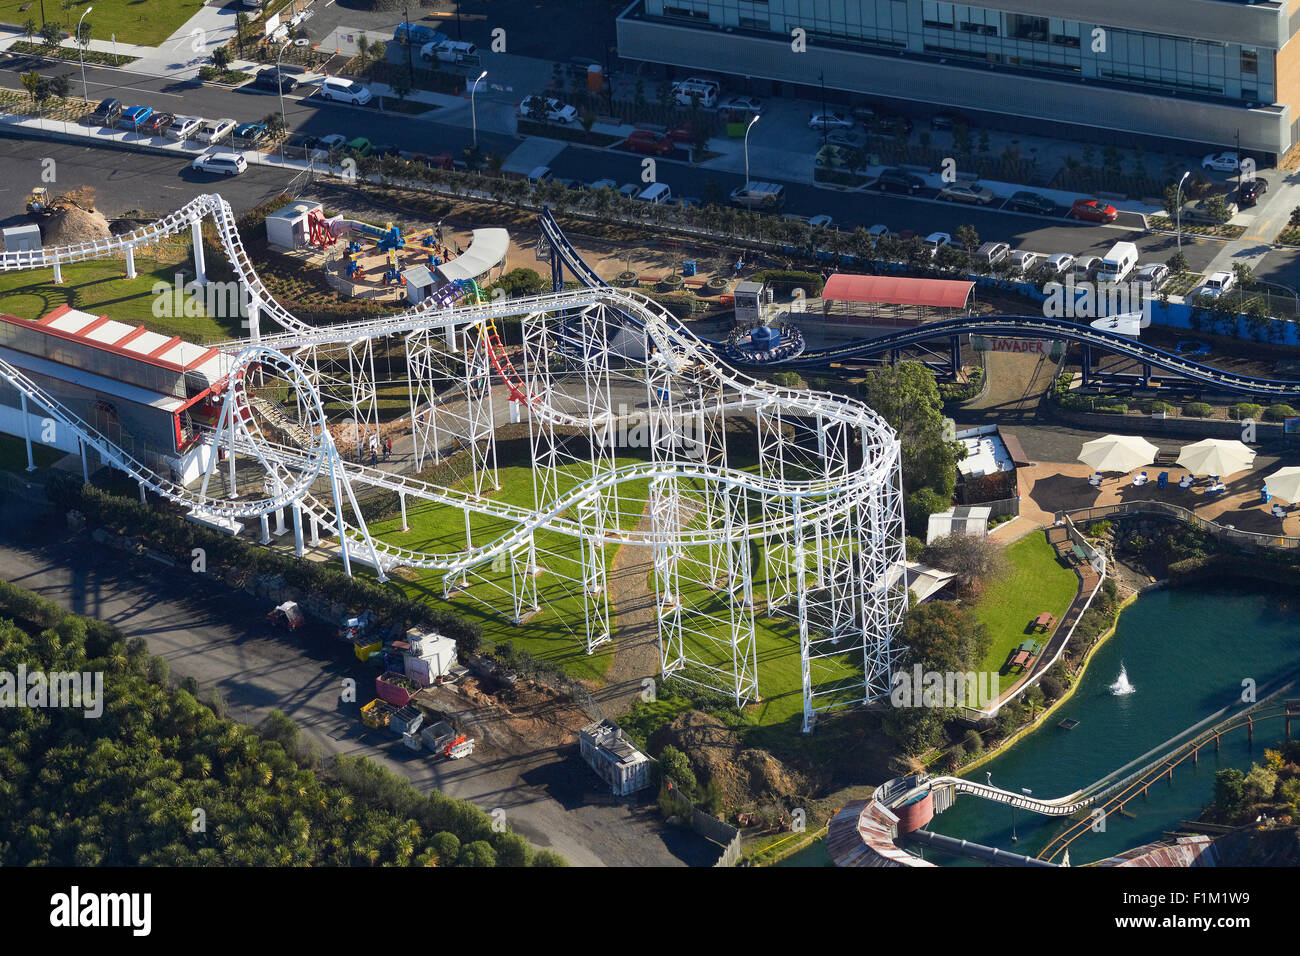 Rainbow's End theme park, Manukau, Auckland, North Island, New Zealand - aerial - Stock Image